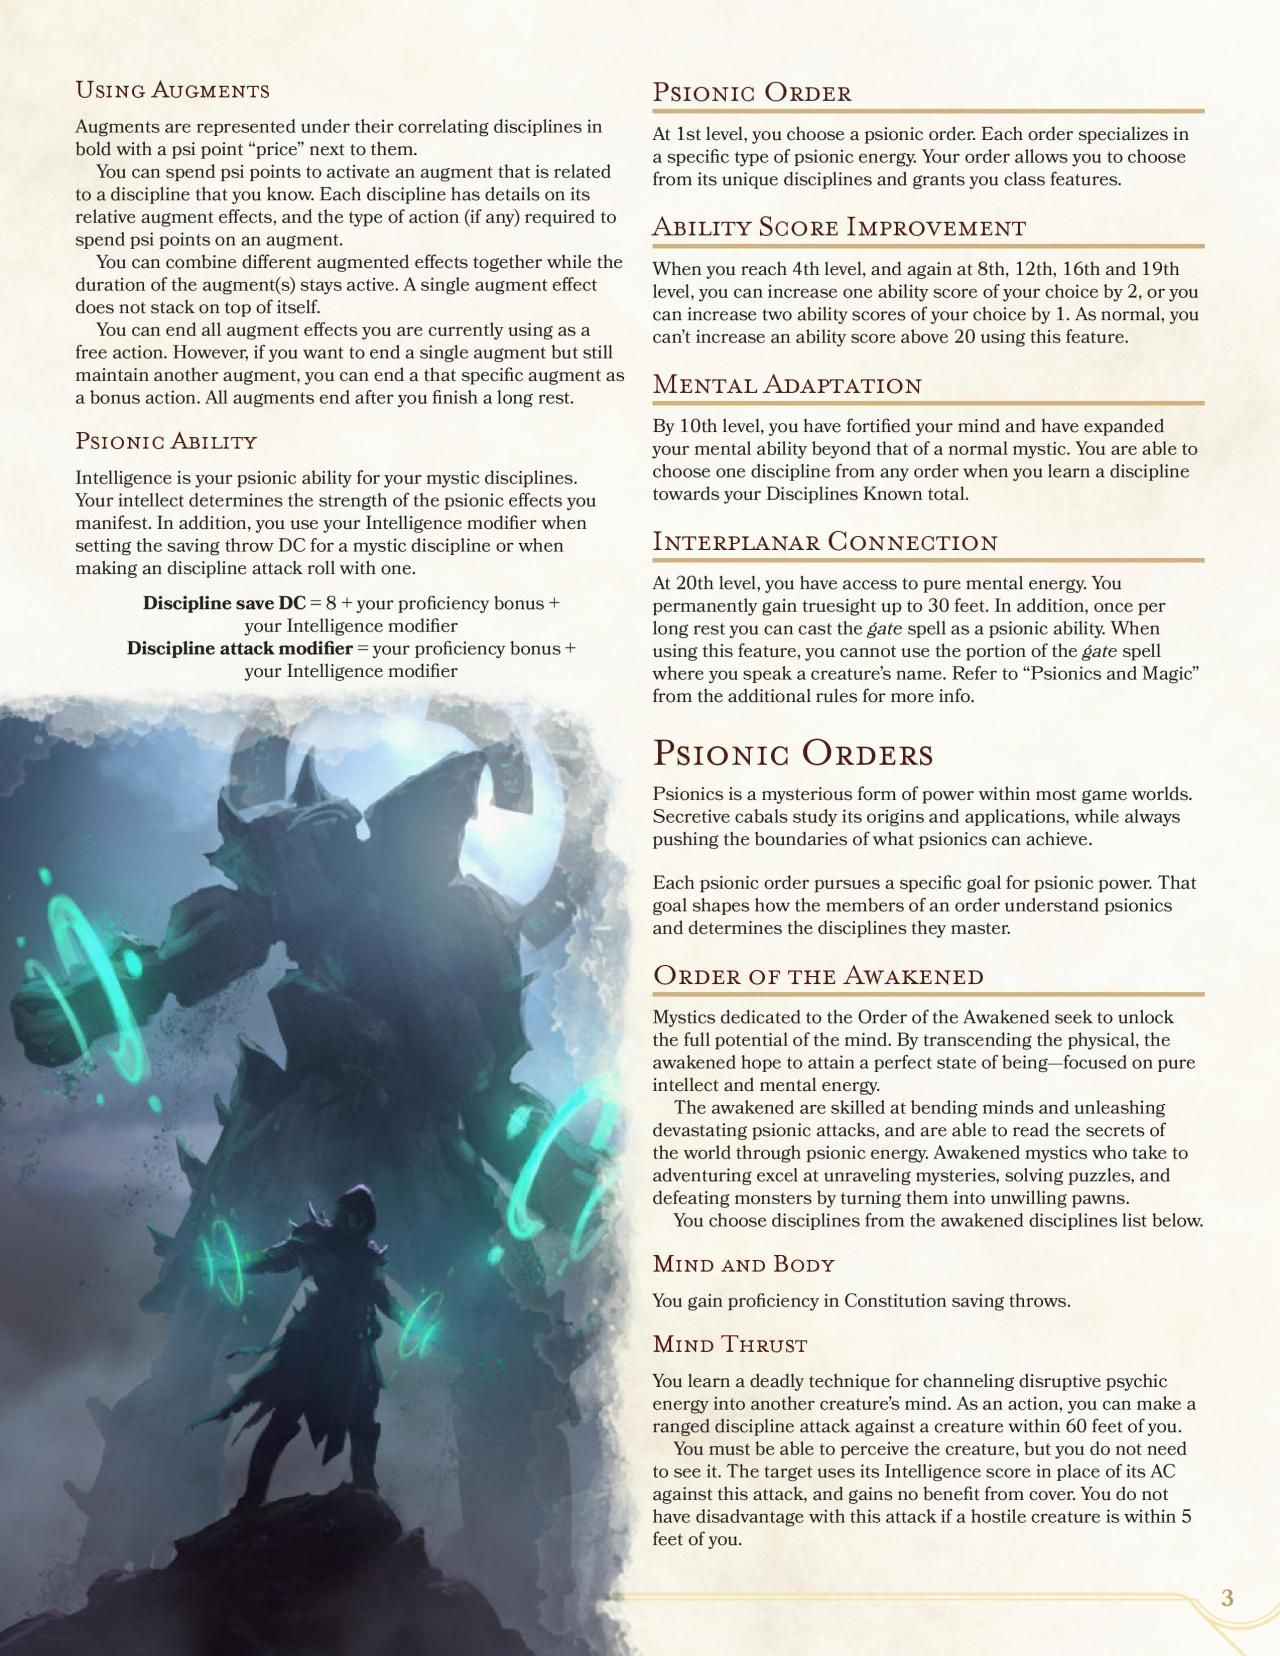 DnD 5e Homebrew — Mystic Continuation by dalagrath | D&D